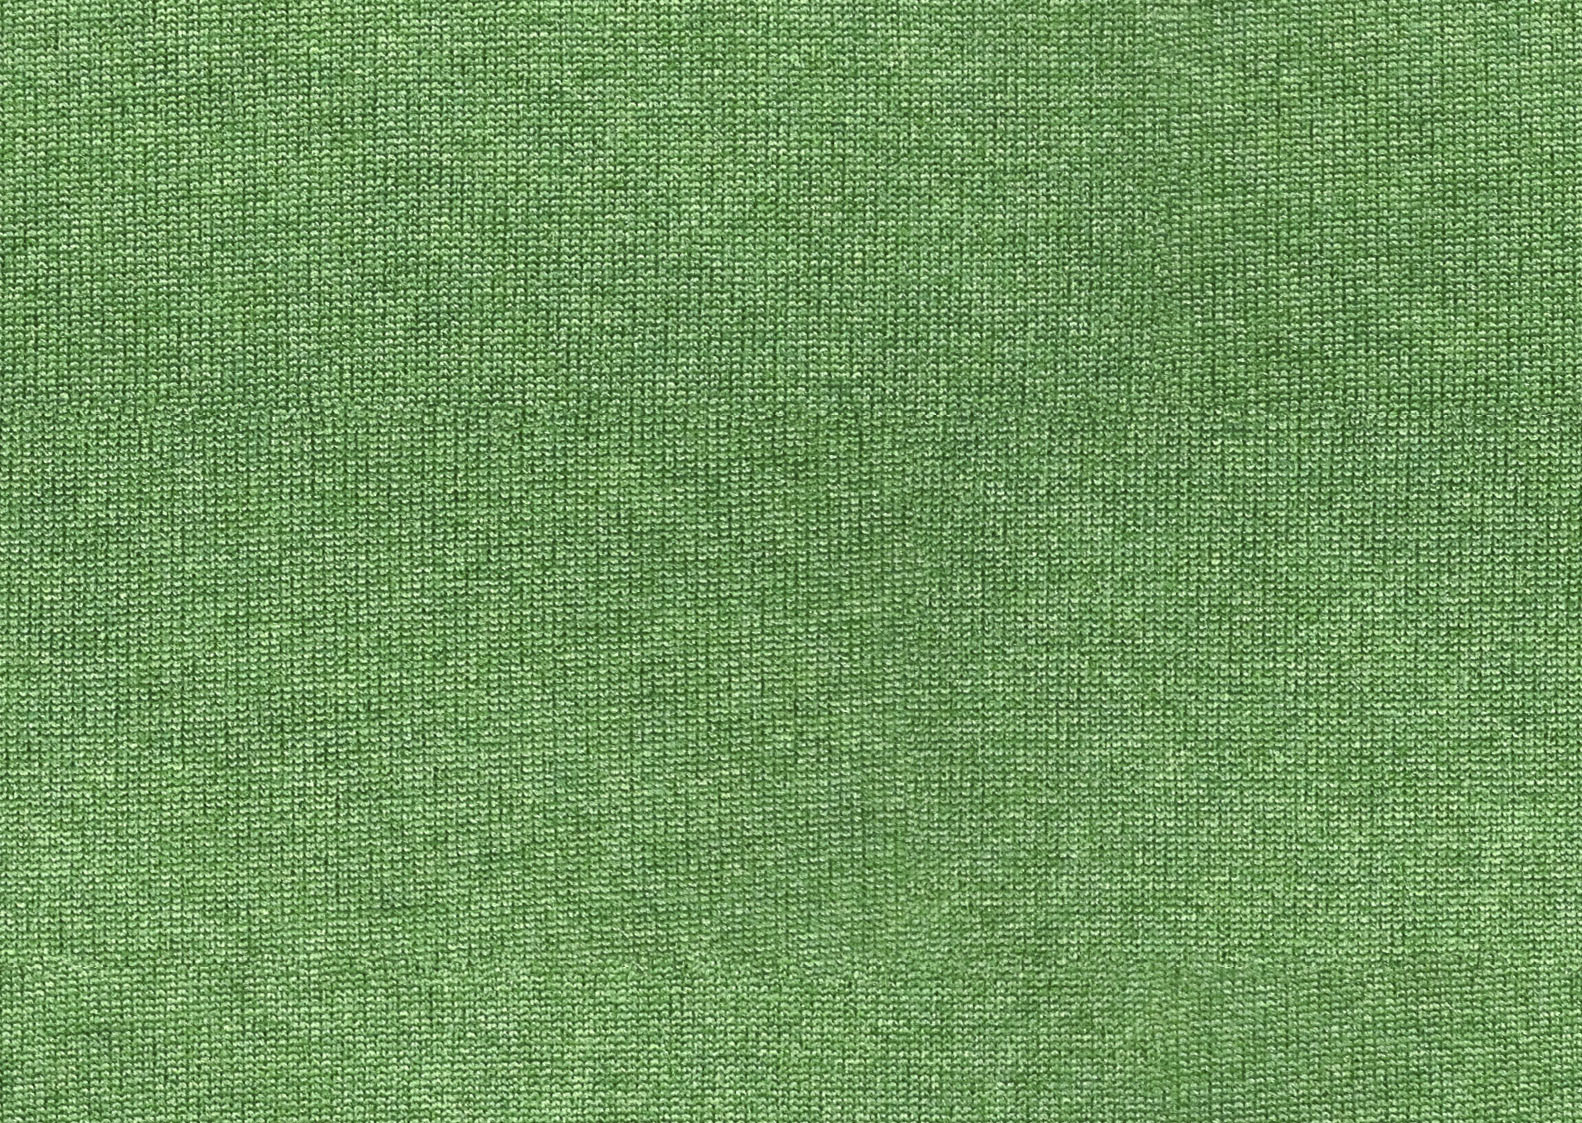 Seamless Texture With: Seamless Green Wool Fabric + (Maps)